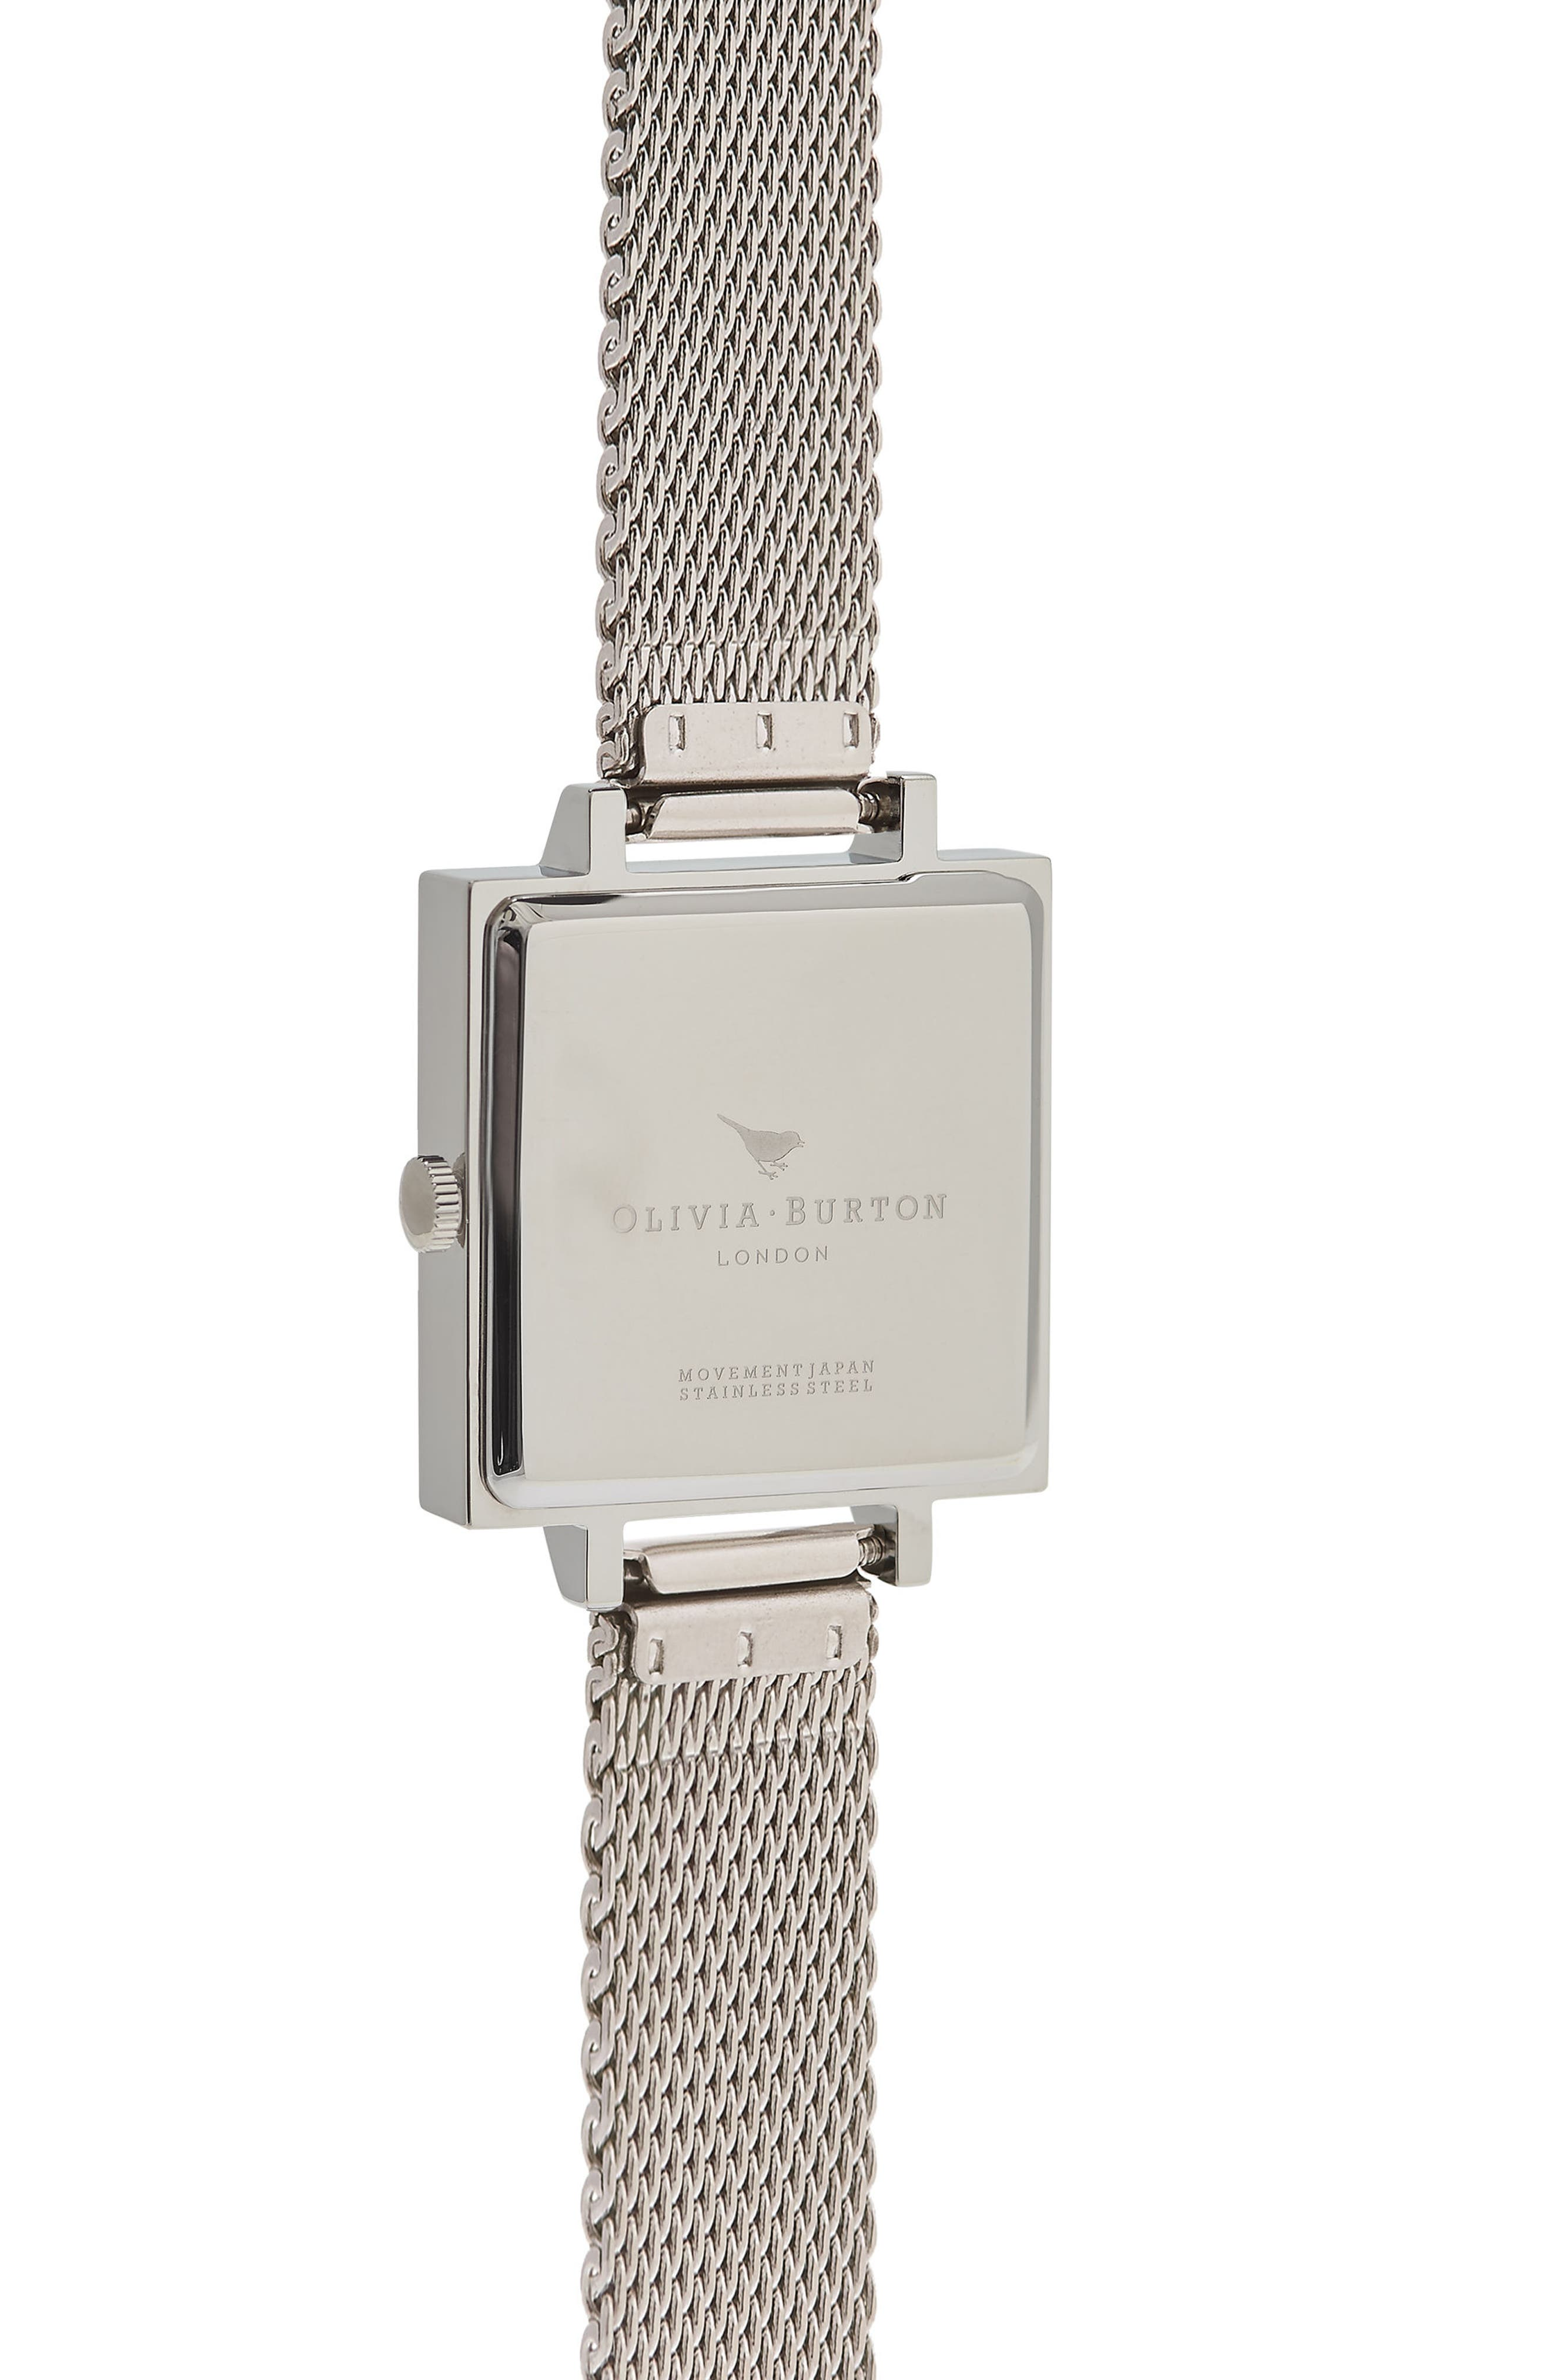 Midi Square Mesh Strap Watch, 22.5mm,                             Alternate thumbnail 2, color,                             040